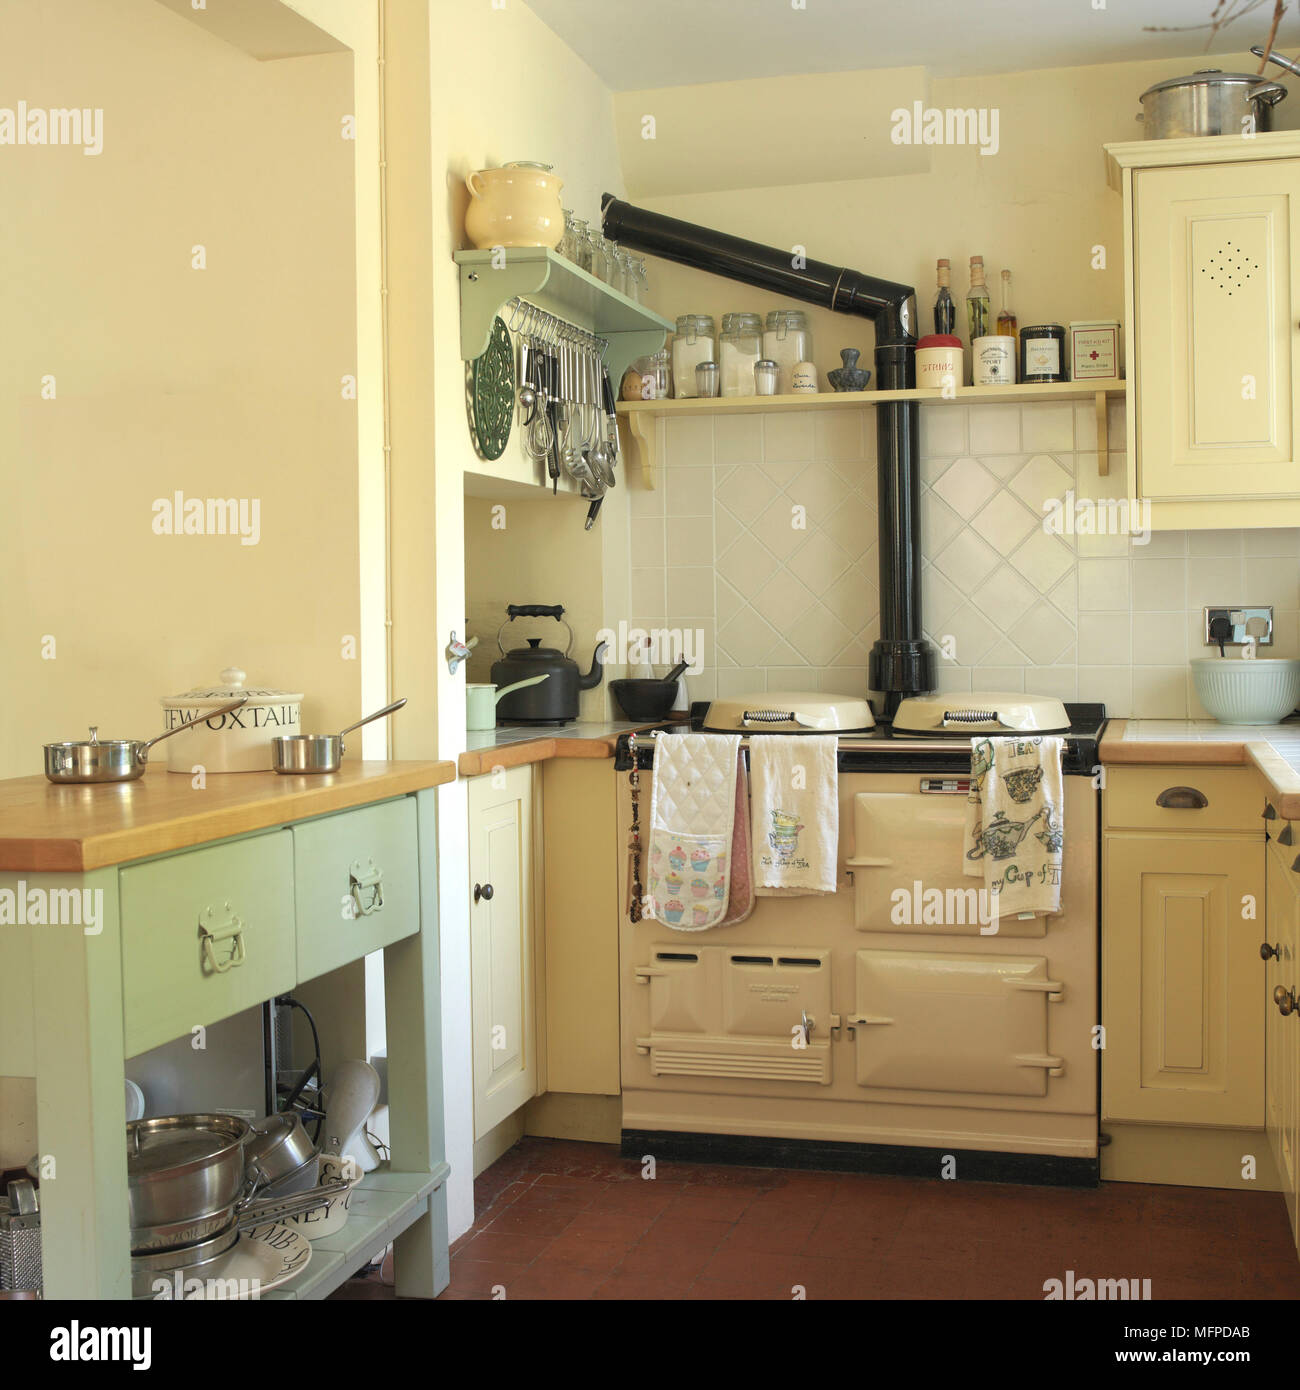 Old Fashioned Oven In Country Style Stockfotos & Old Fashioned Oven In Country Style Bilder - Alamy